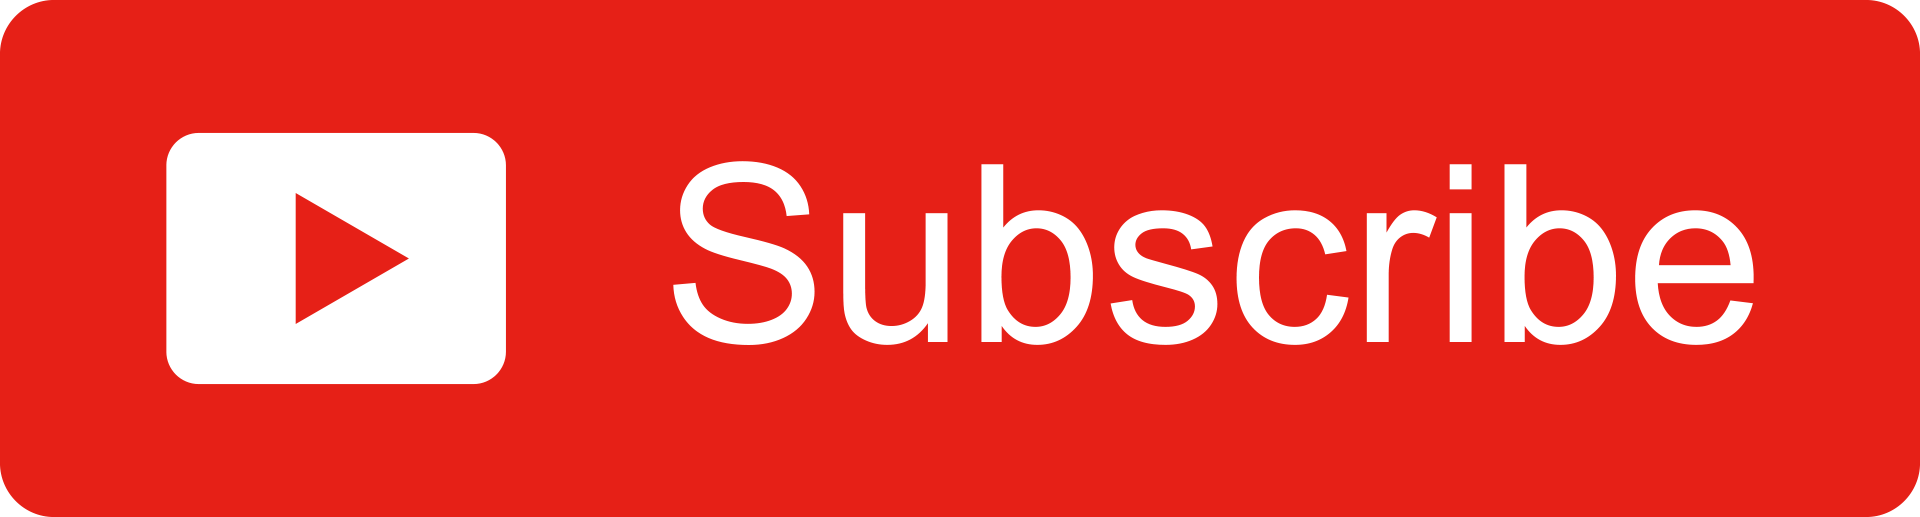 Free-Red-Subscribe-Button-By-AlfredoCreates.png